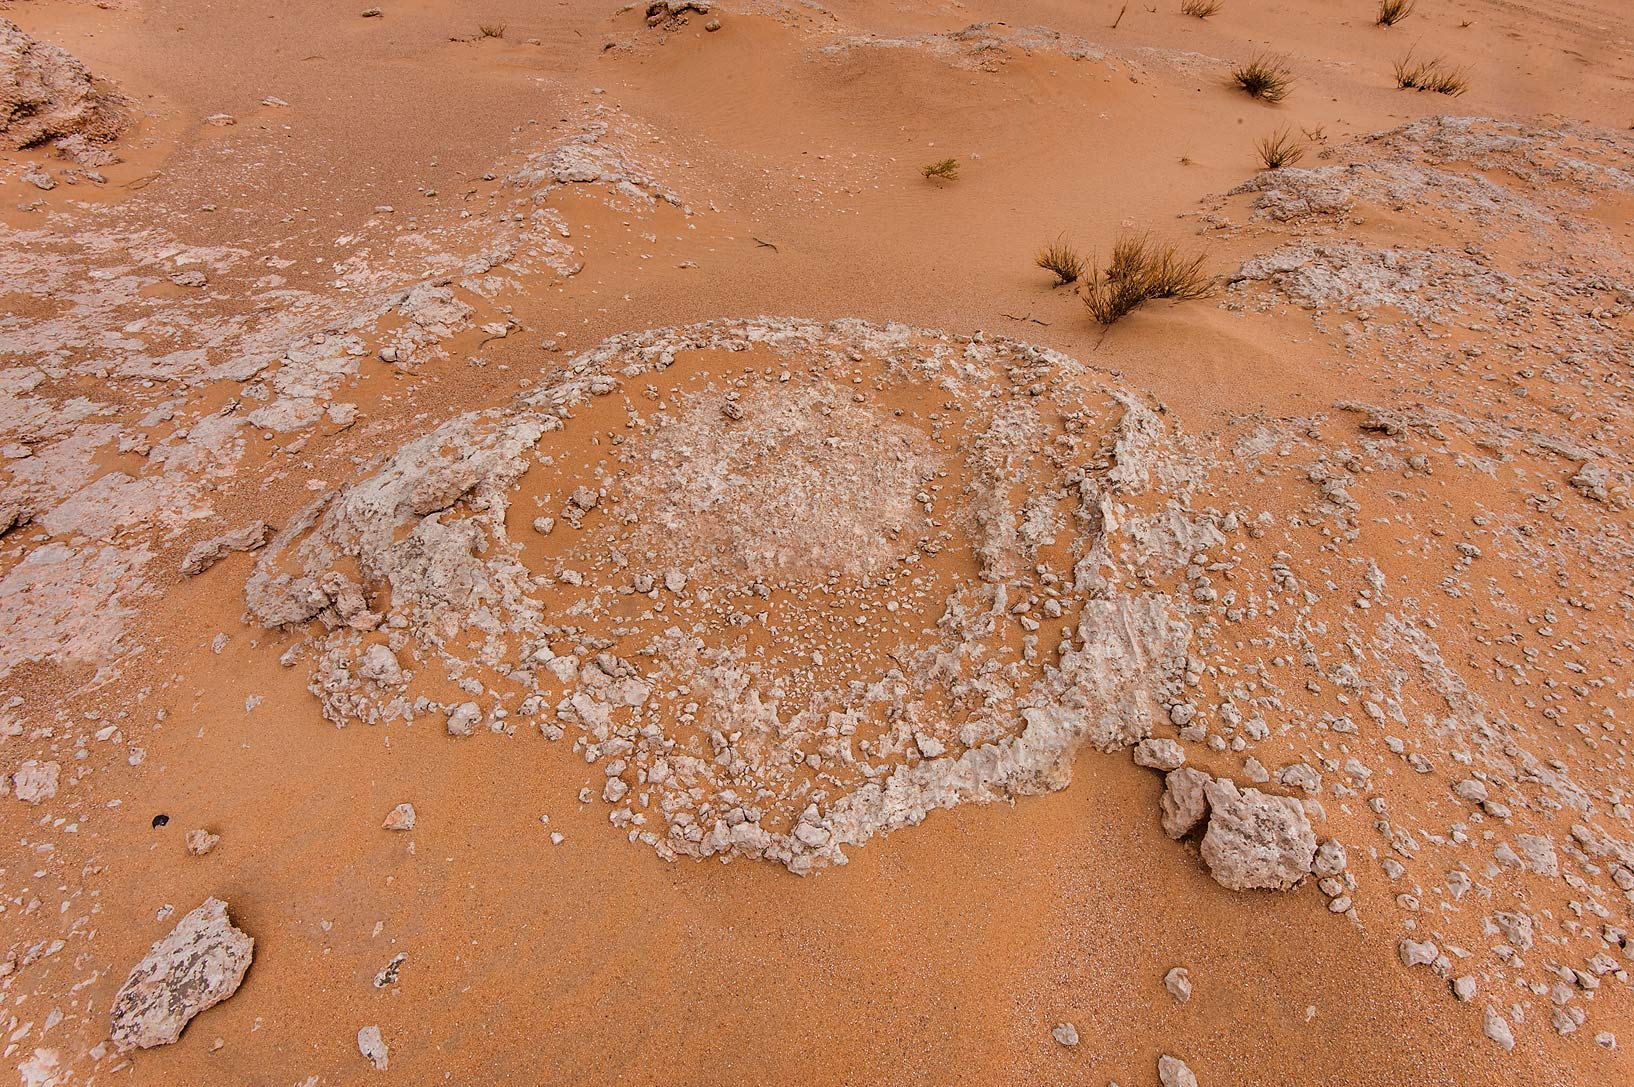 Sandblasted fossilised intertidal stromatolites...near Salwa Rd. in southern Qatar